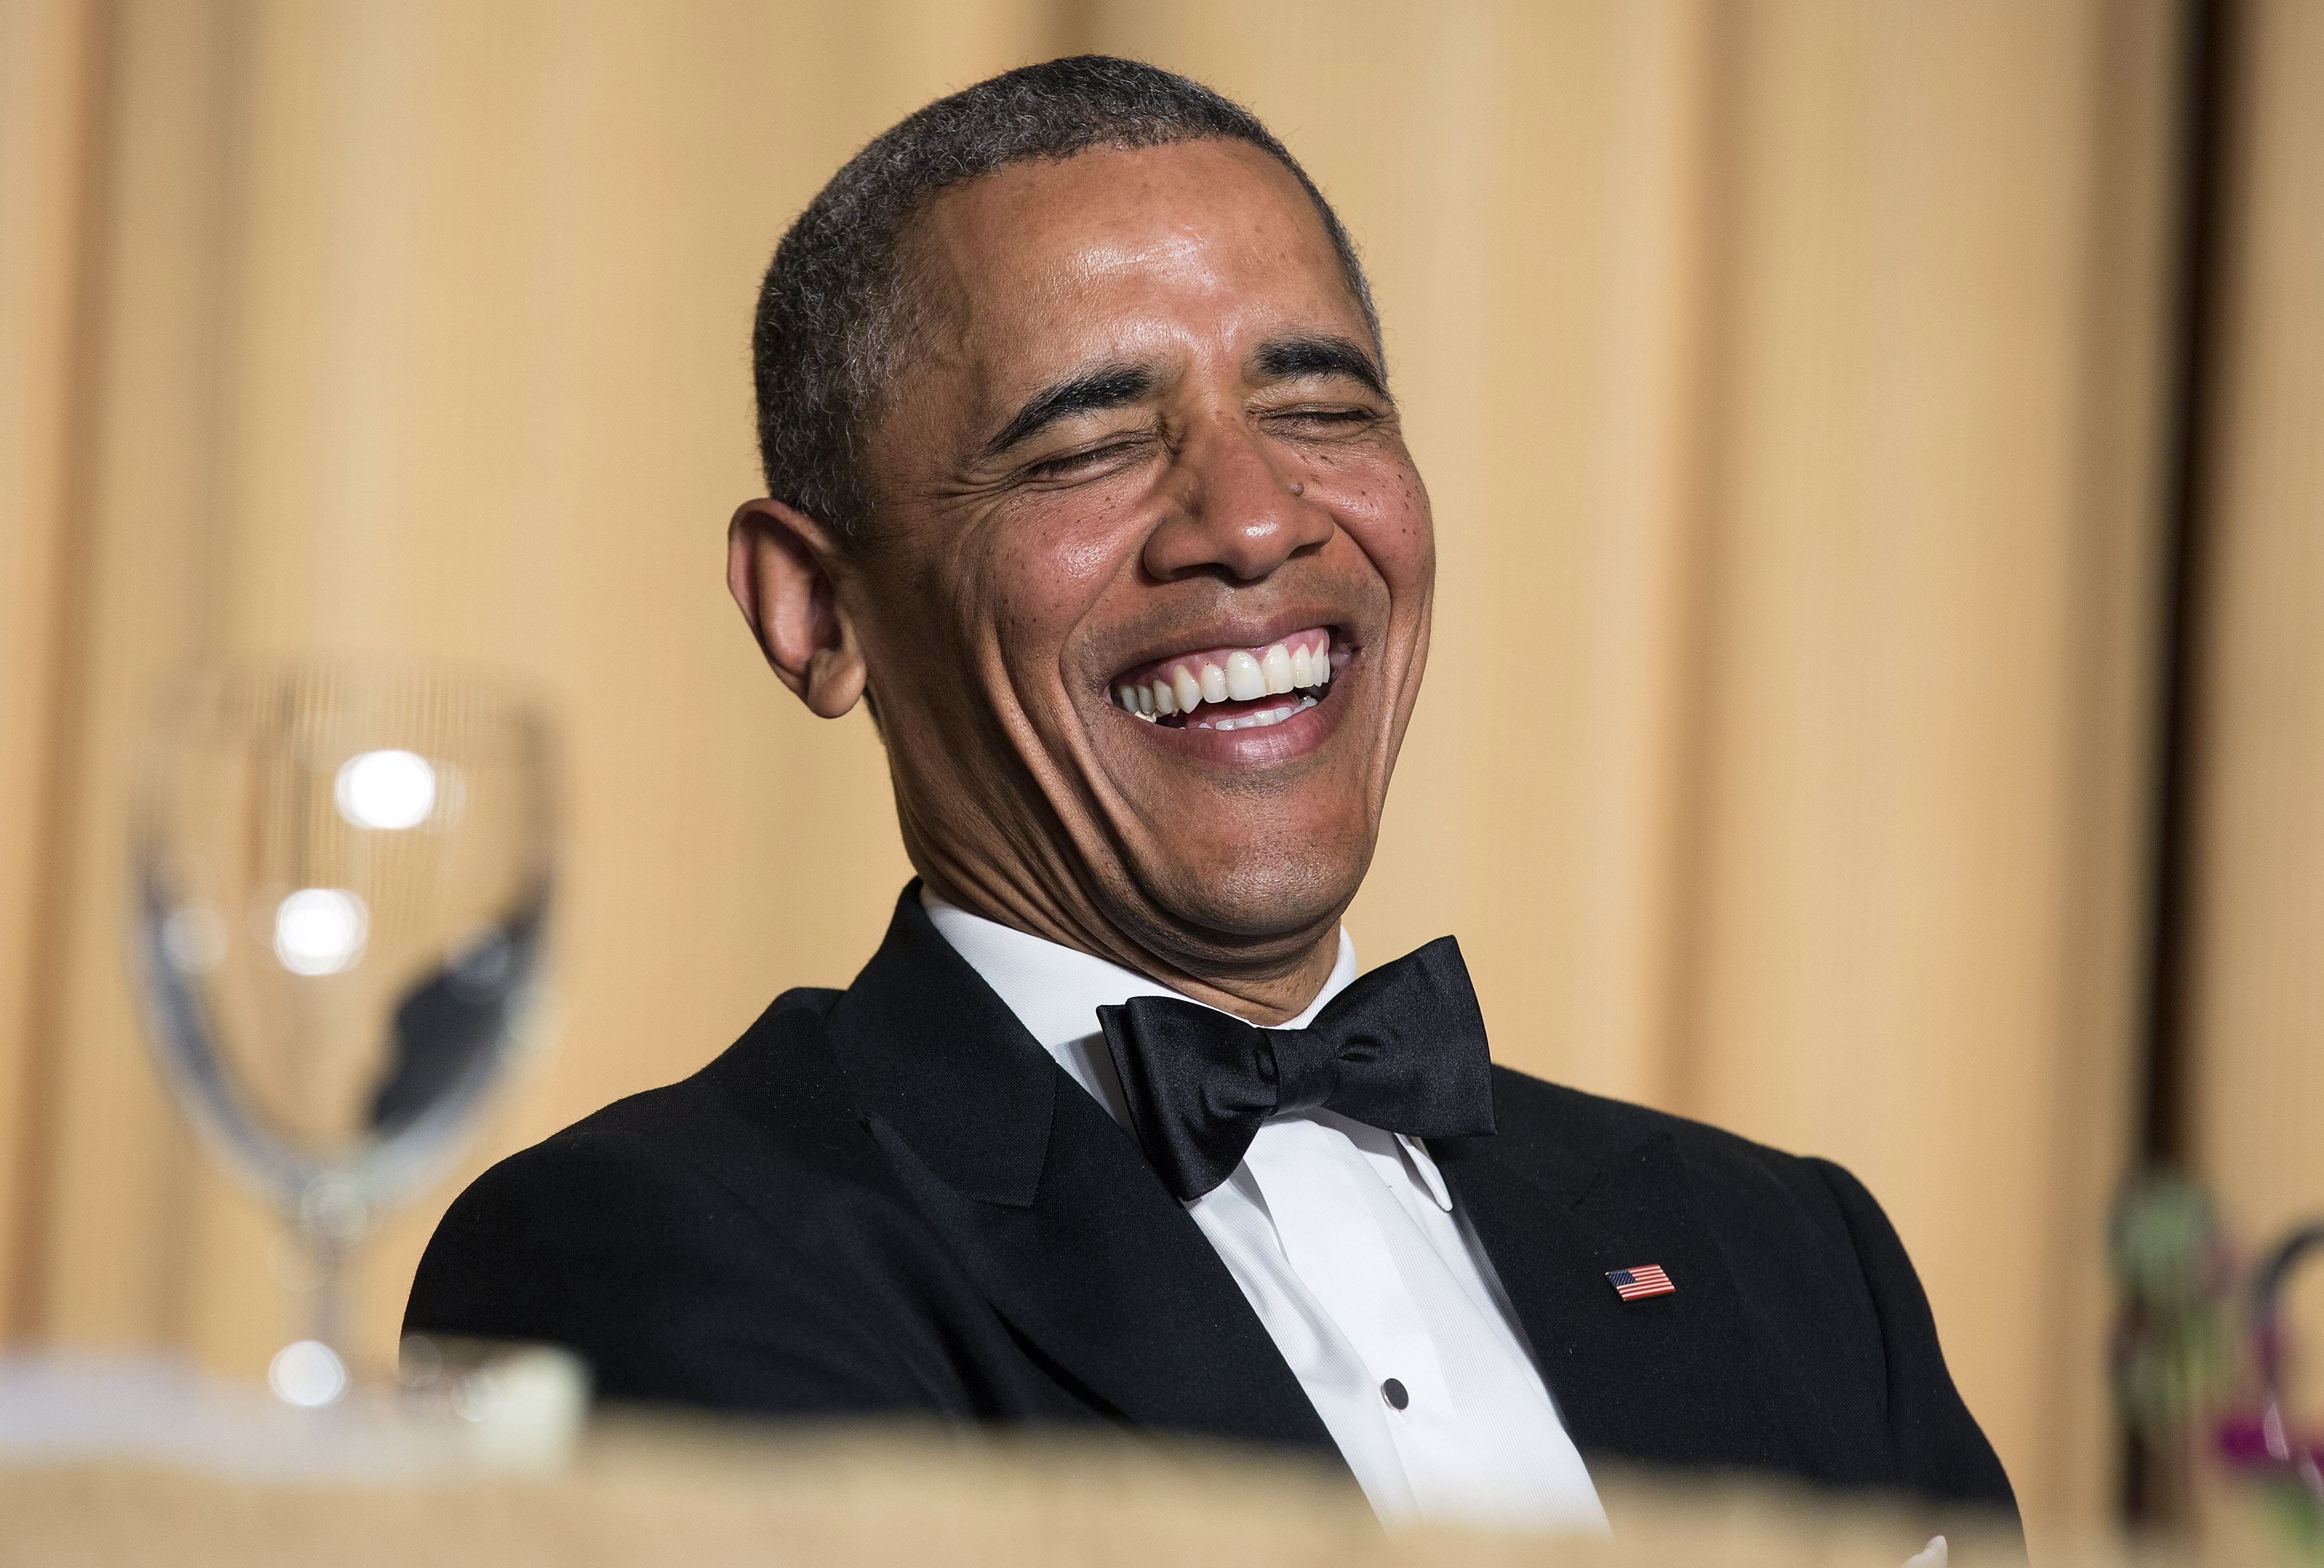 Obama laugh Barack Obamas Latest Speech Proves He Missed His True Calling As A Comedian